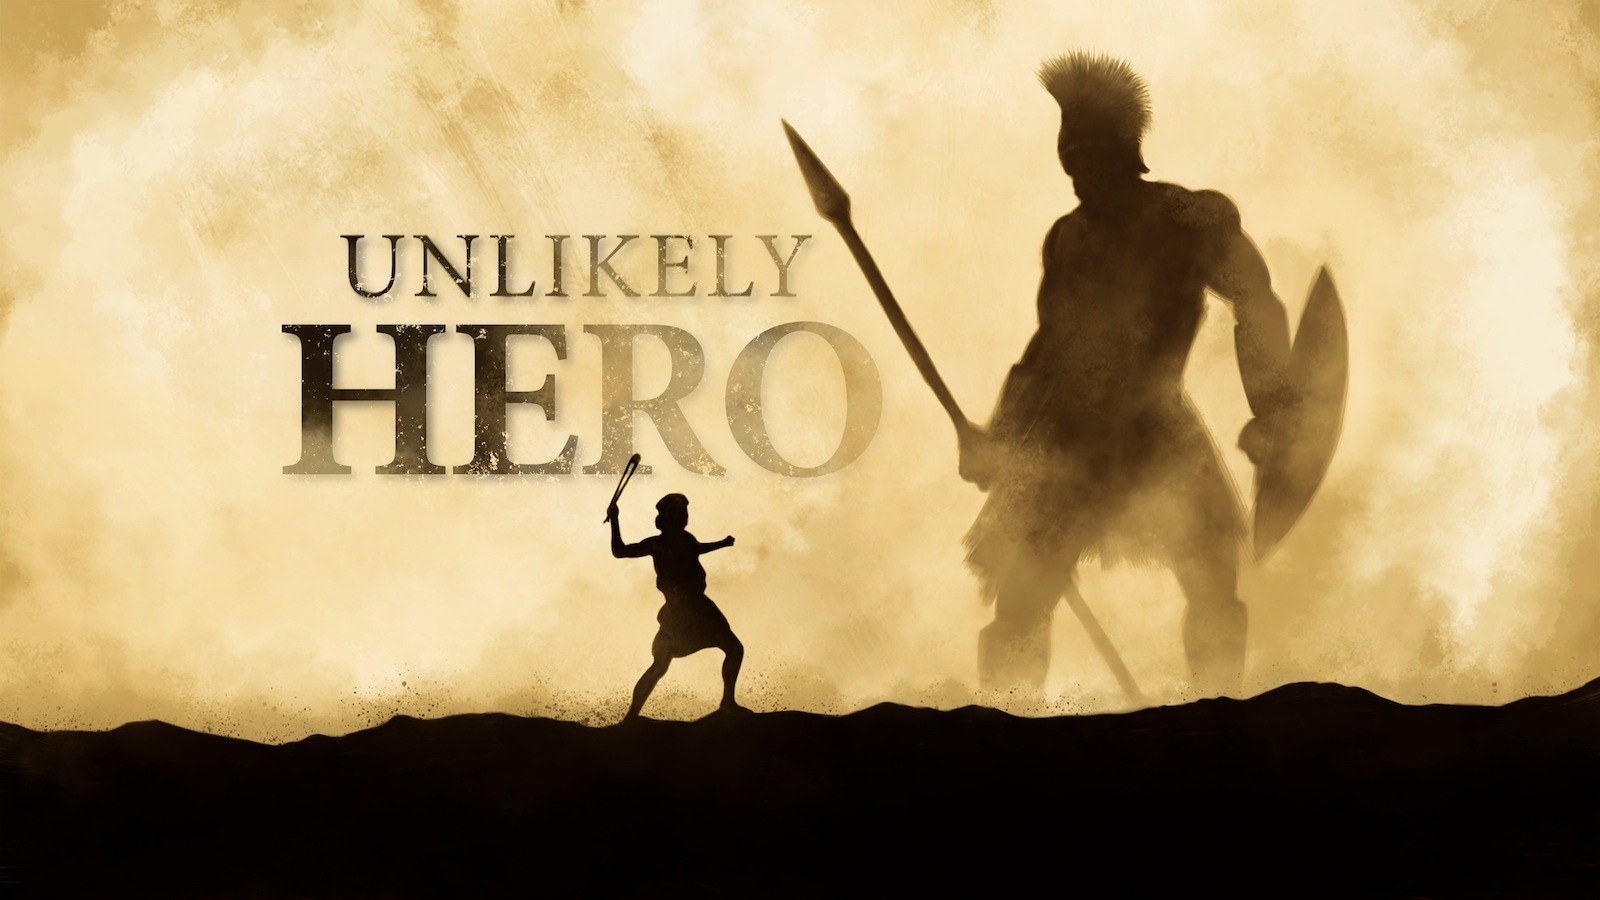 Fall Of Gods Wallpaper Unlikely Hero Tan Smaller Heroes What They Do Amp Why We